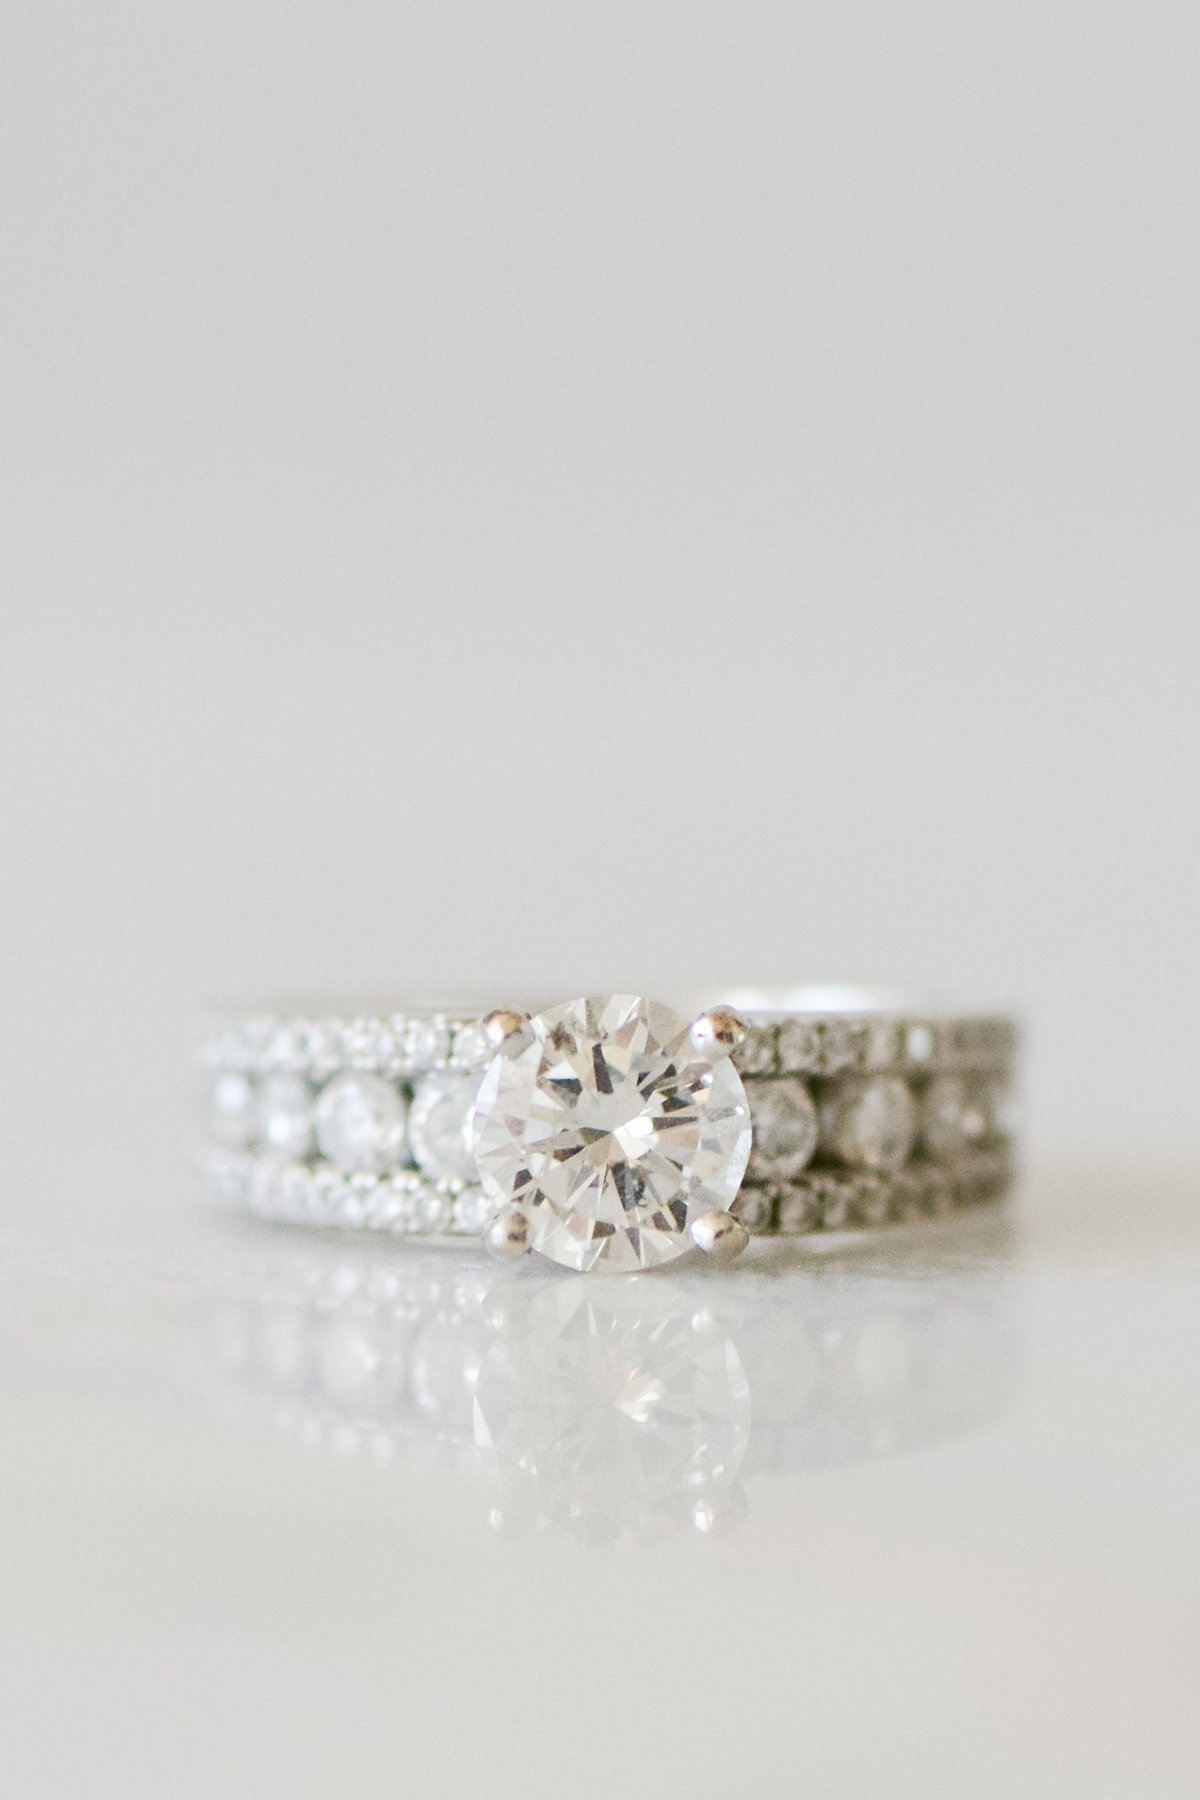 CLose up photo of Bride's Diamond wedding ring